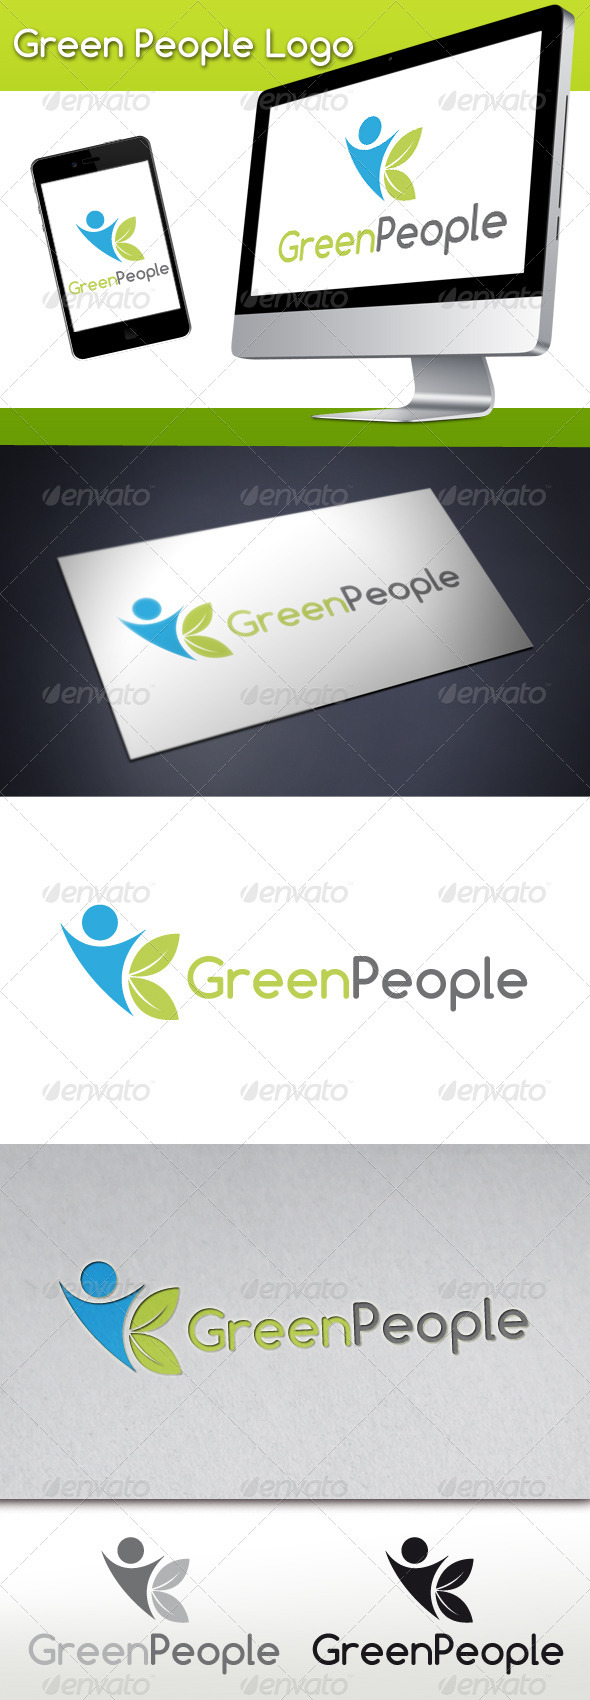 Green People Logo 2